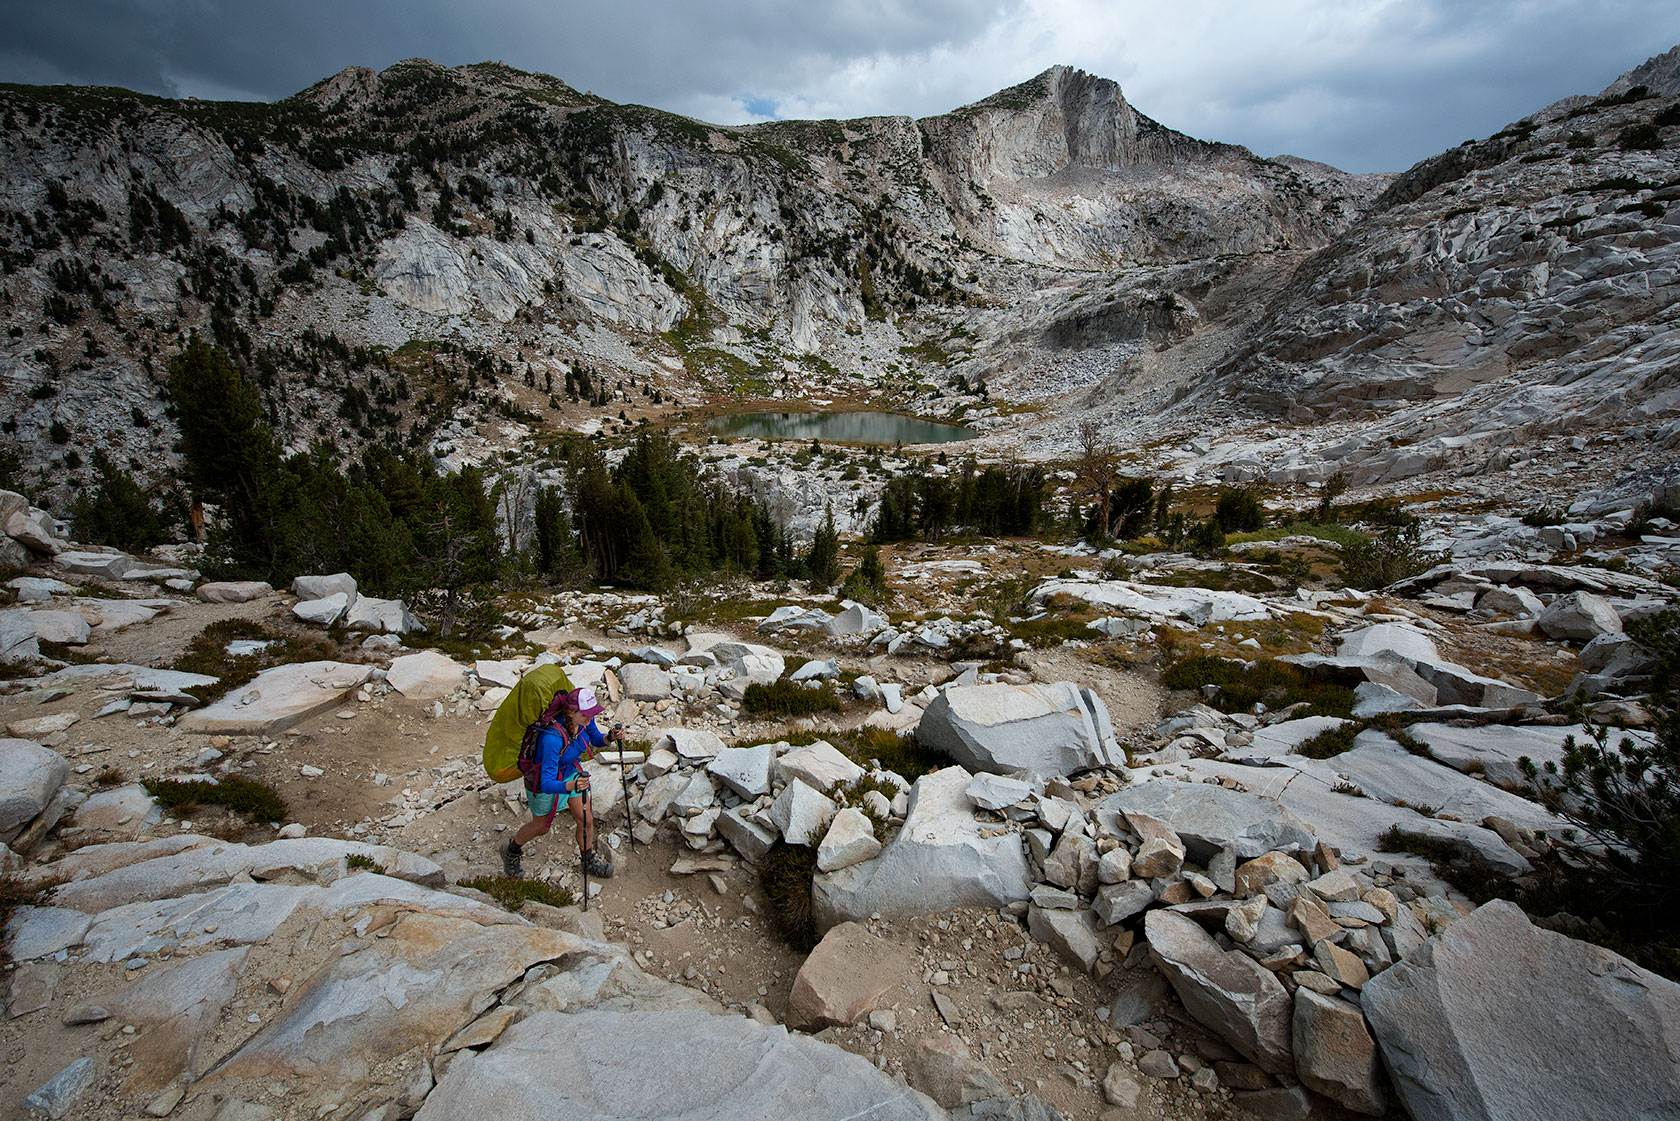 austin-trigg-patagonia-hiking-john-muir-trail-wilderness-california-adventure-outside-camp-sierra-nevada-thunderstorm-silver-pass.jpg